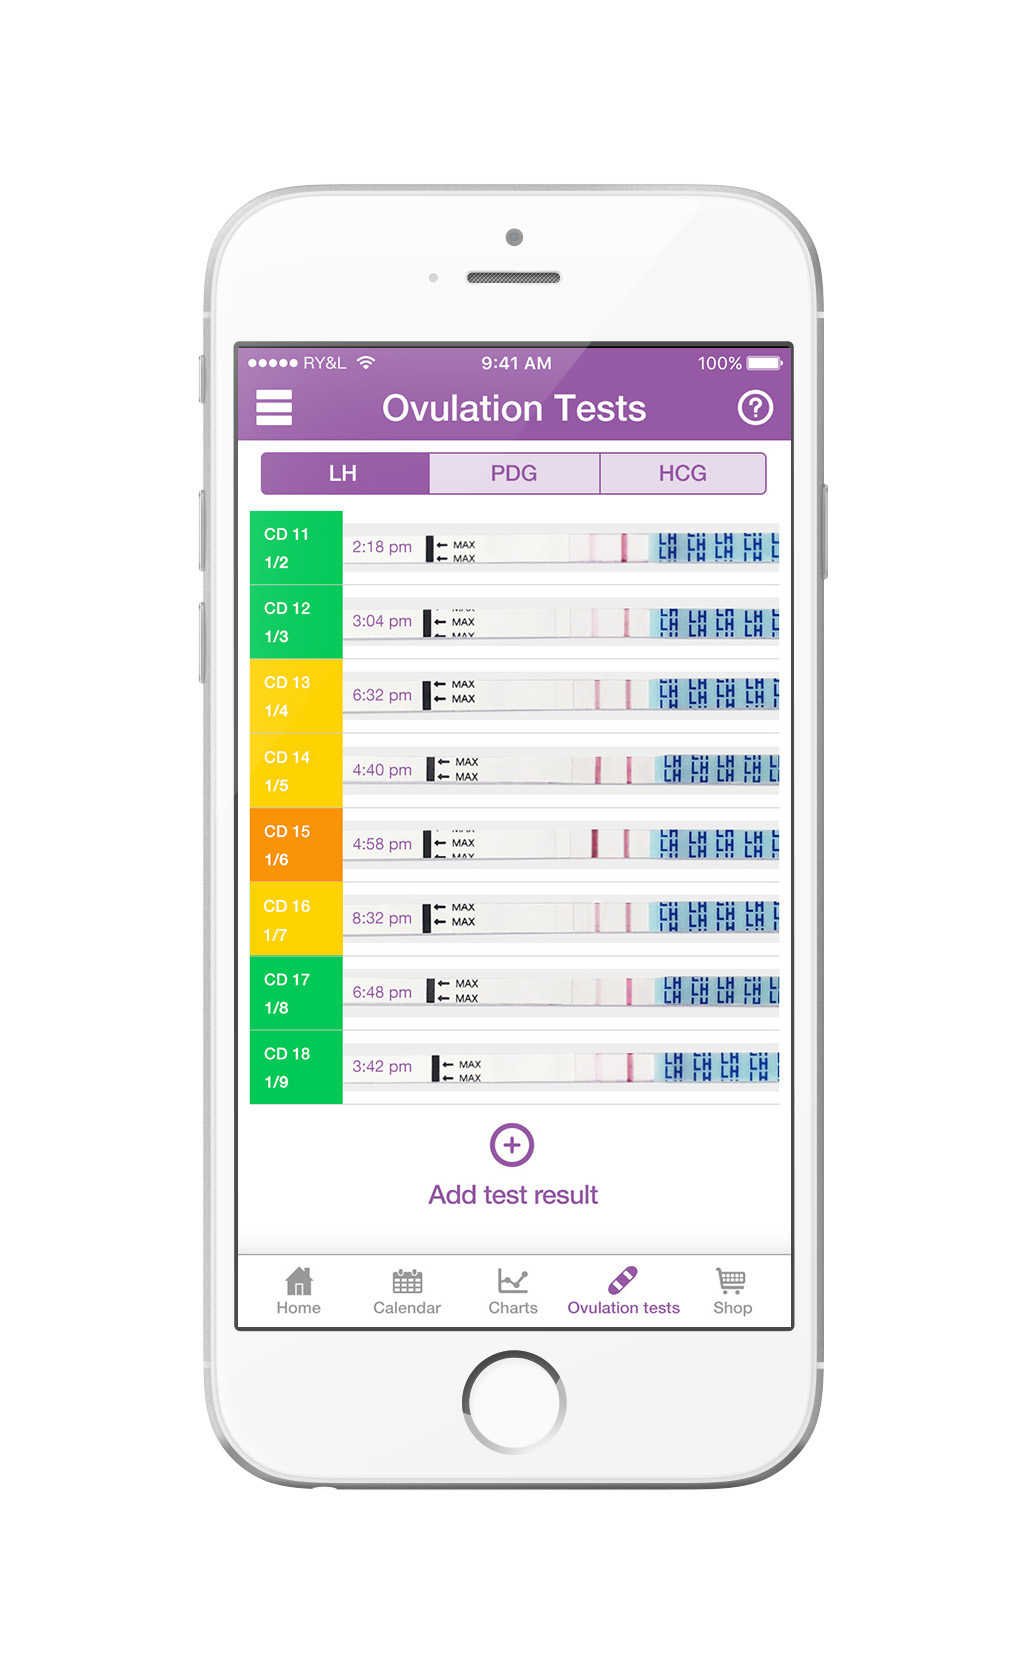 ovulation tests gallery-02.jpg